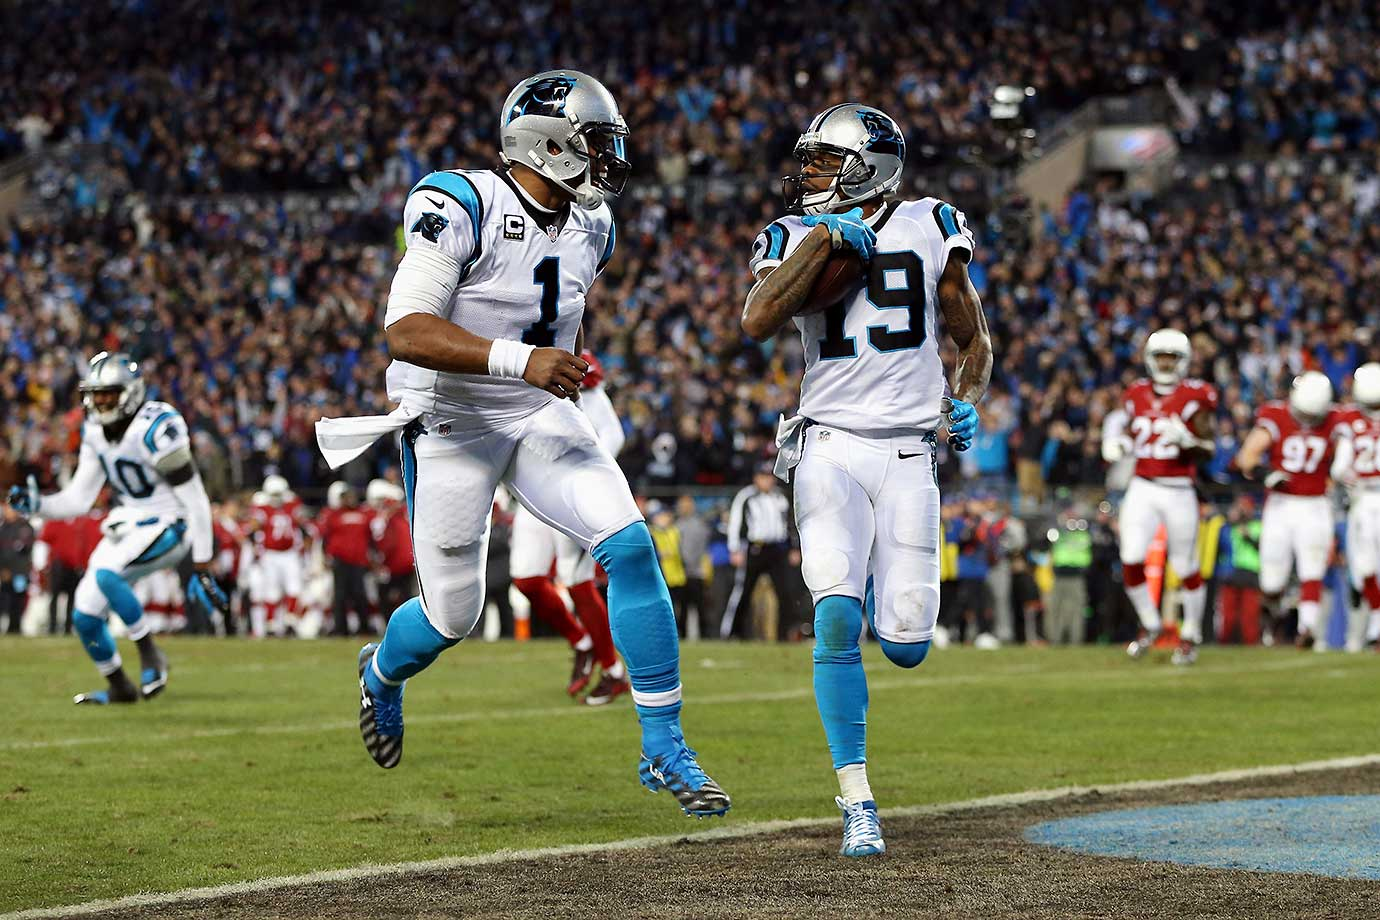 Cam Newton celebrates as Ted Ginn Jr. scores a touchdown in the first quarter of the NFC Championship game.